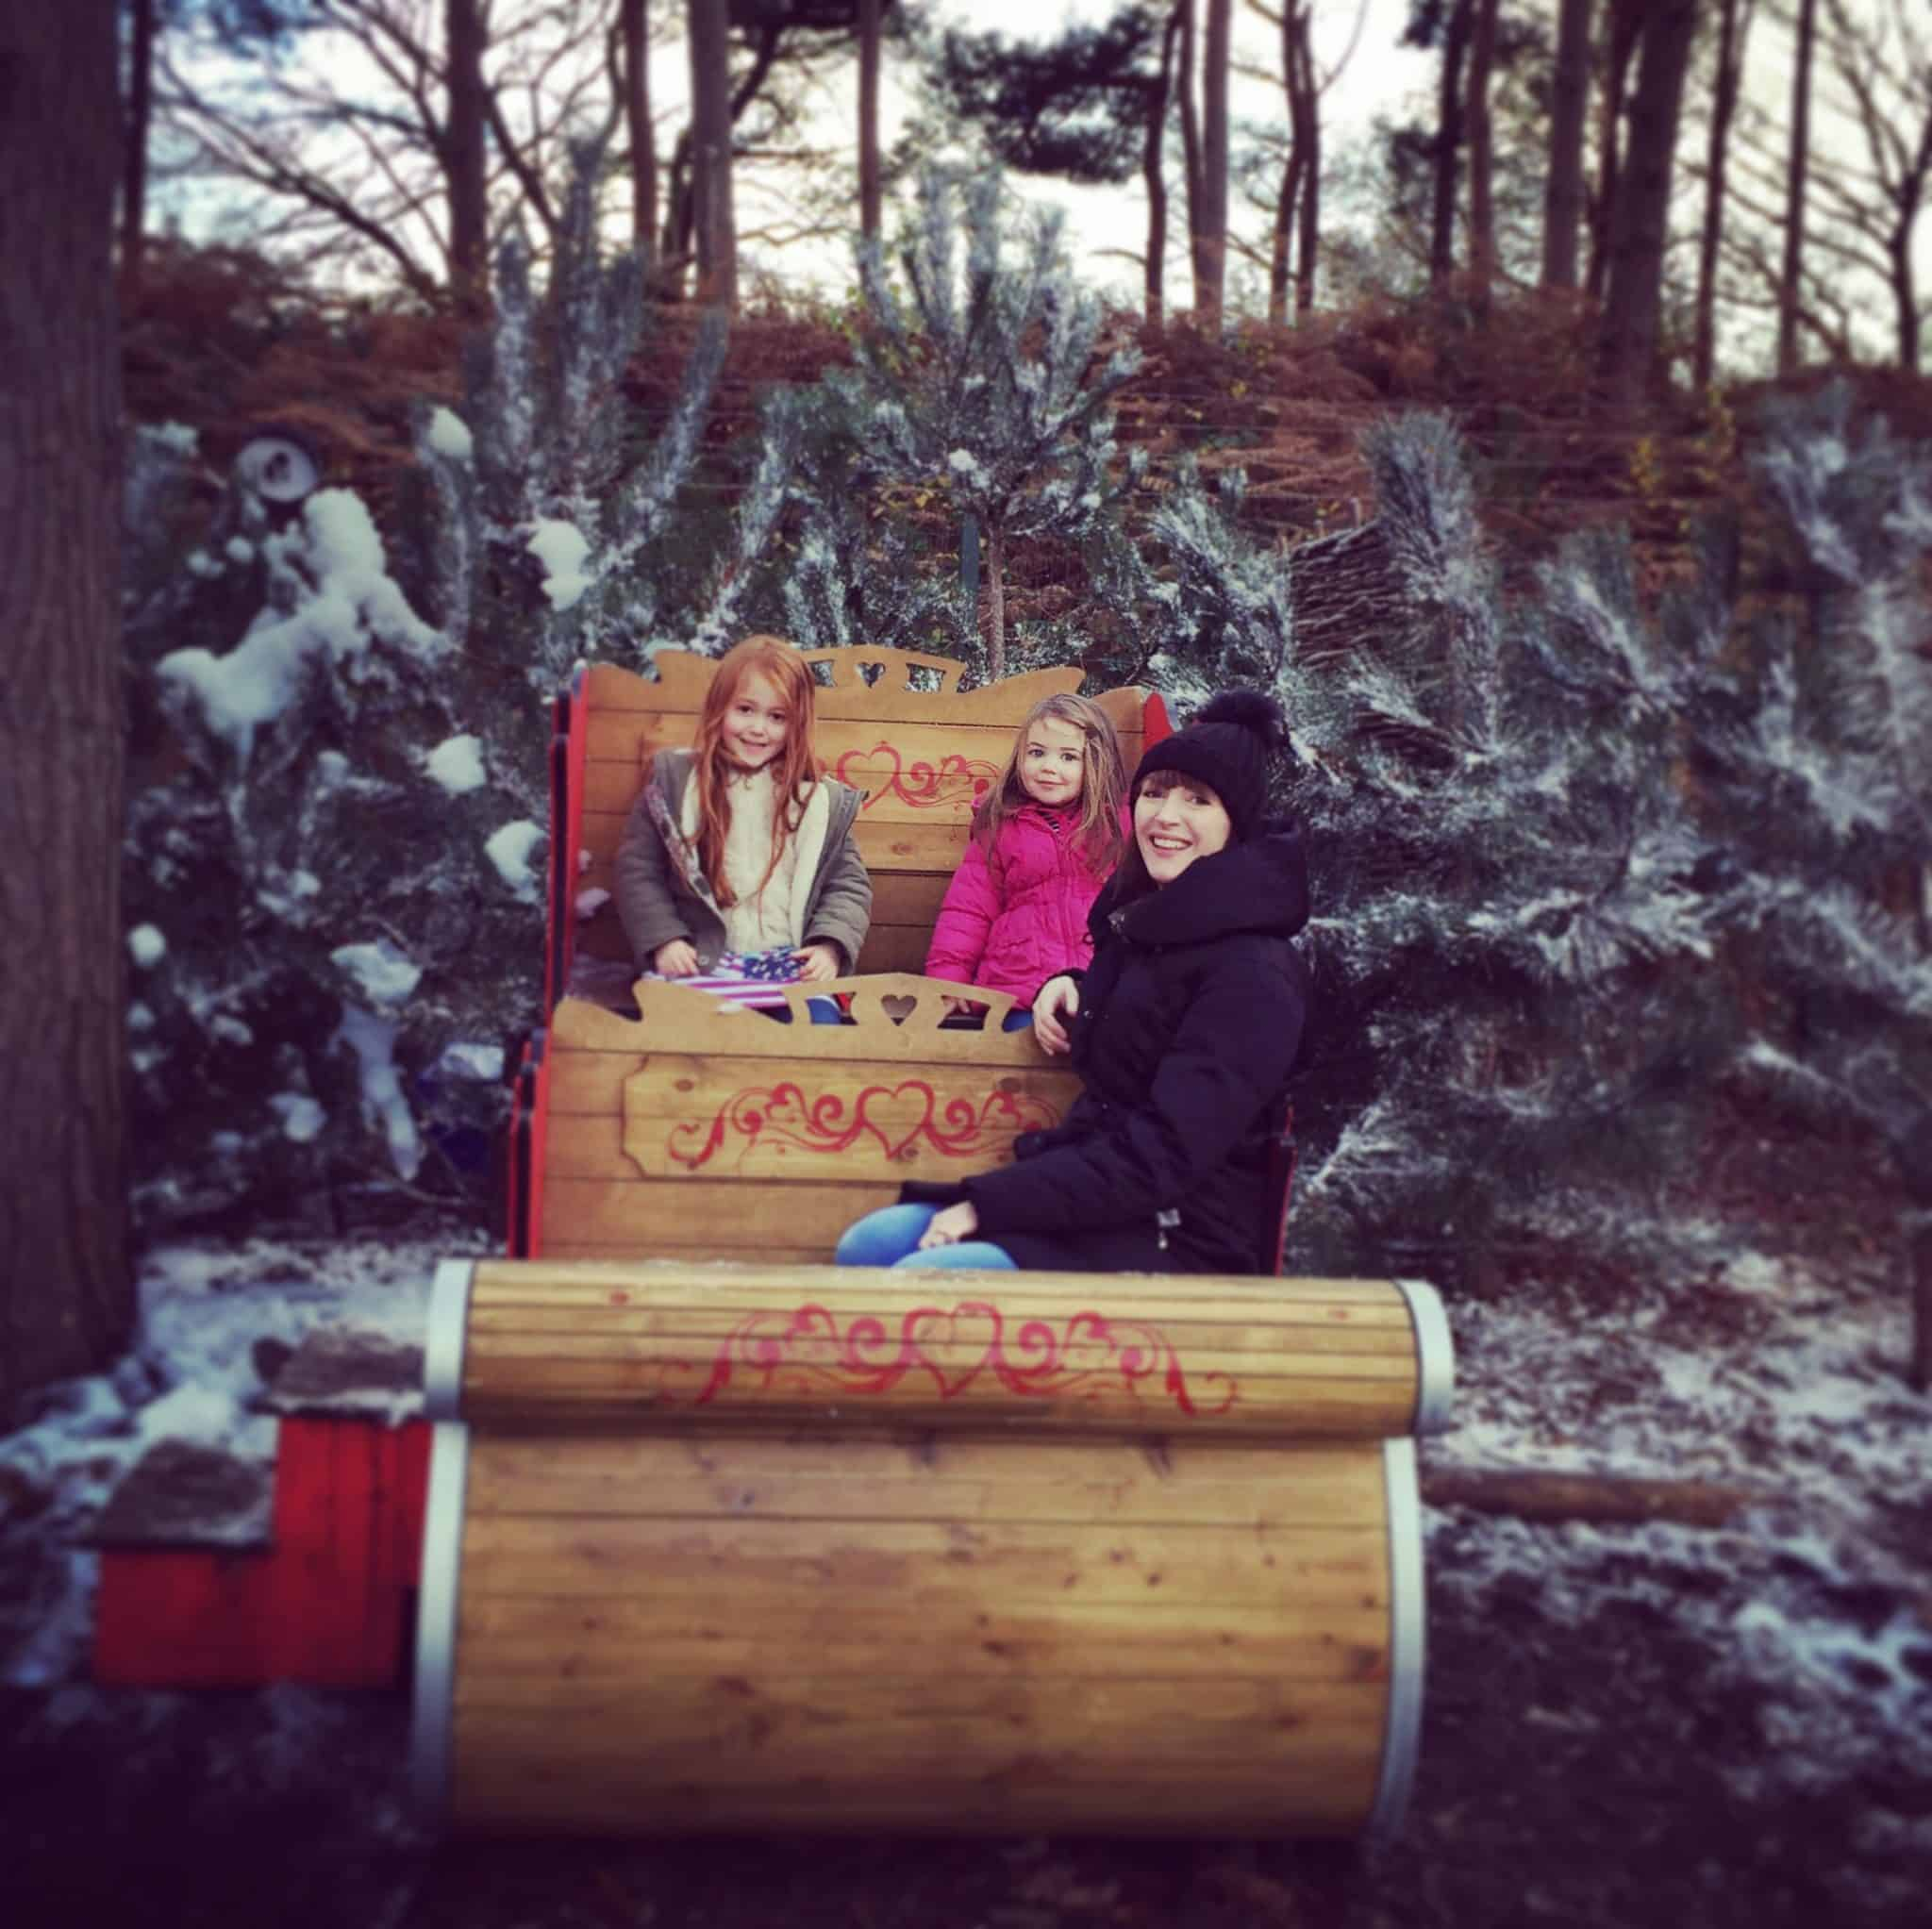 Ava, Thea and Becky Pink in a sleigh.JPG